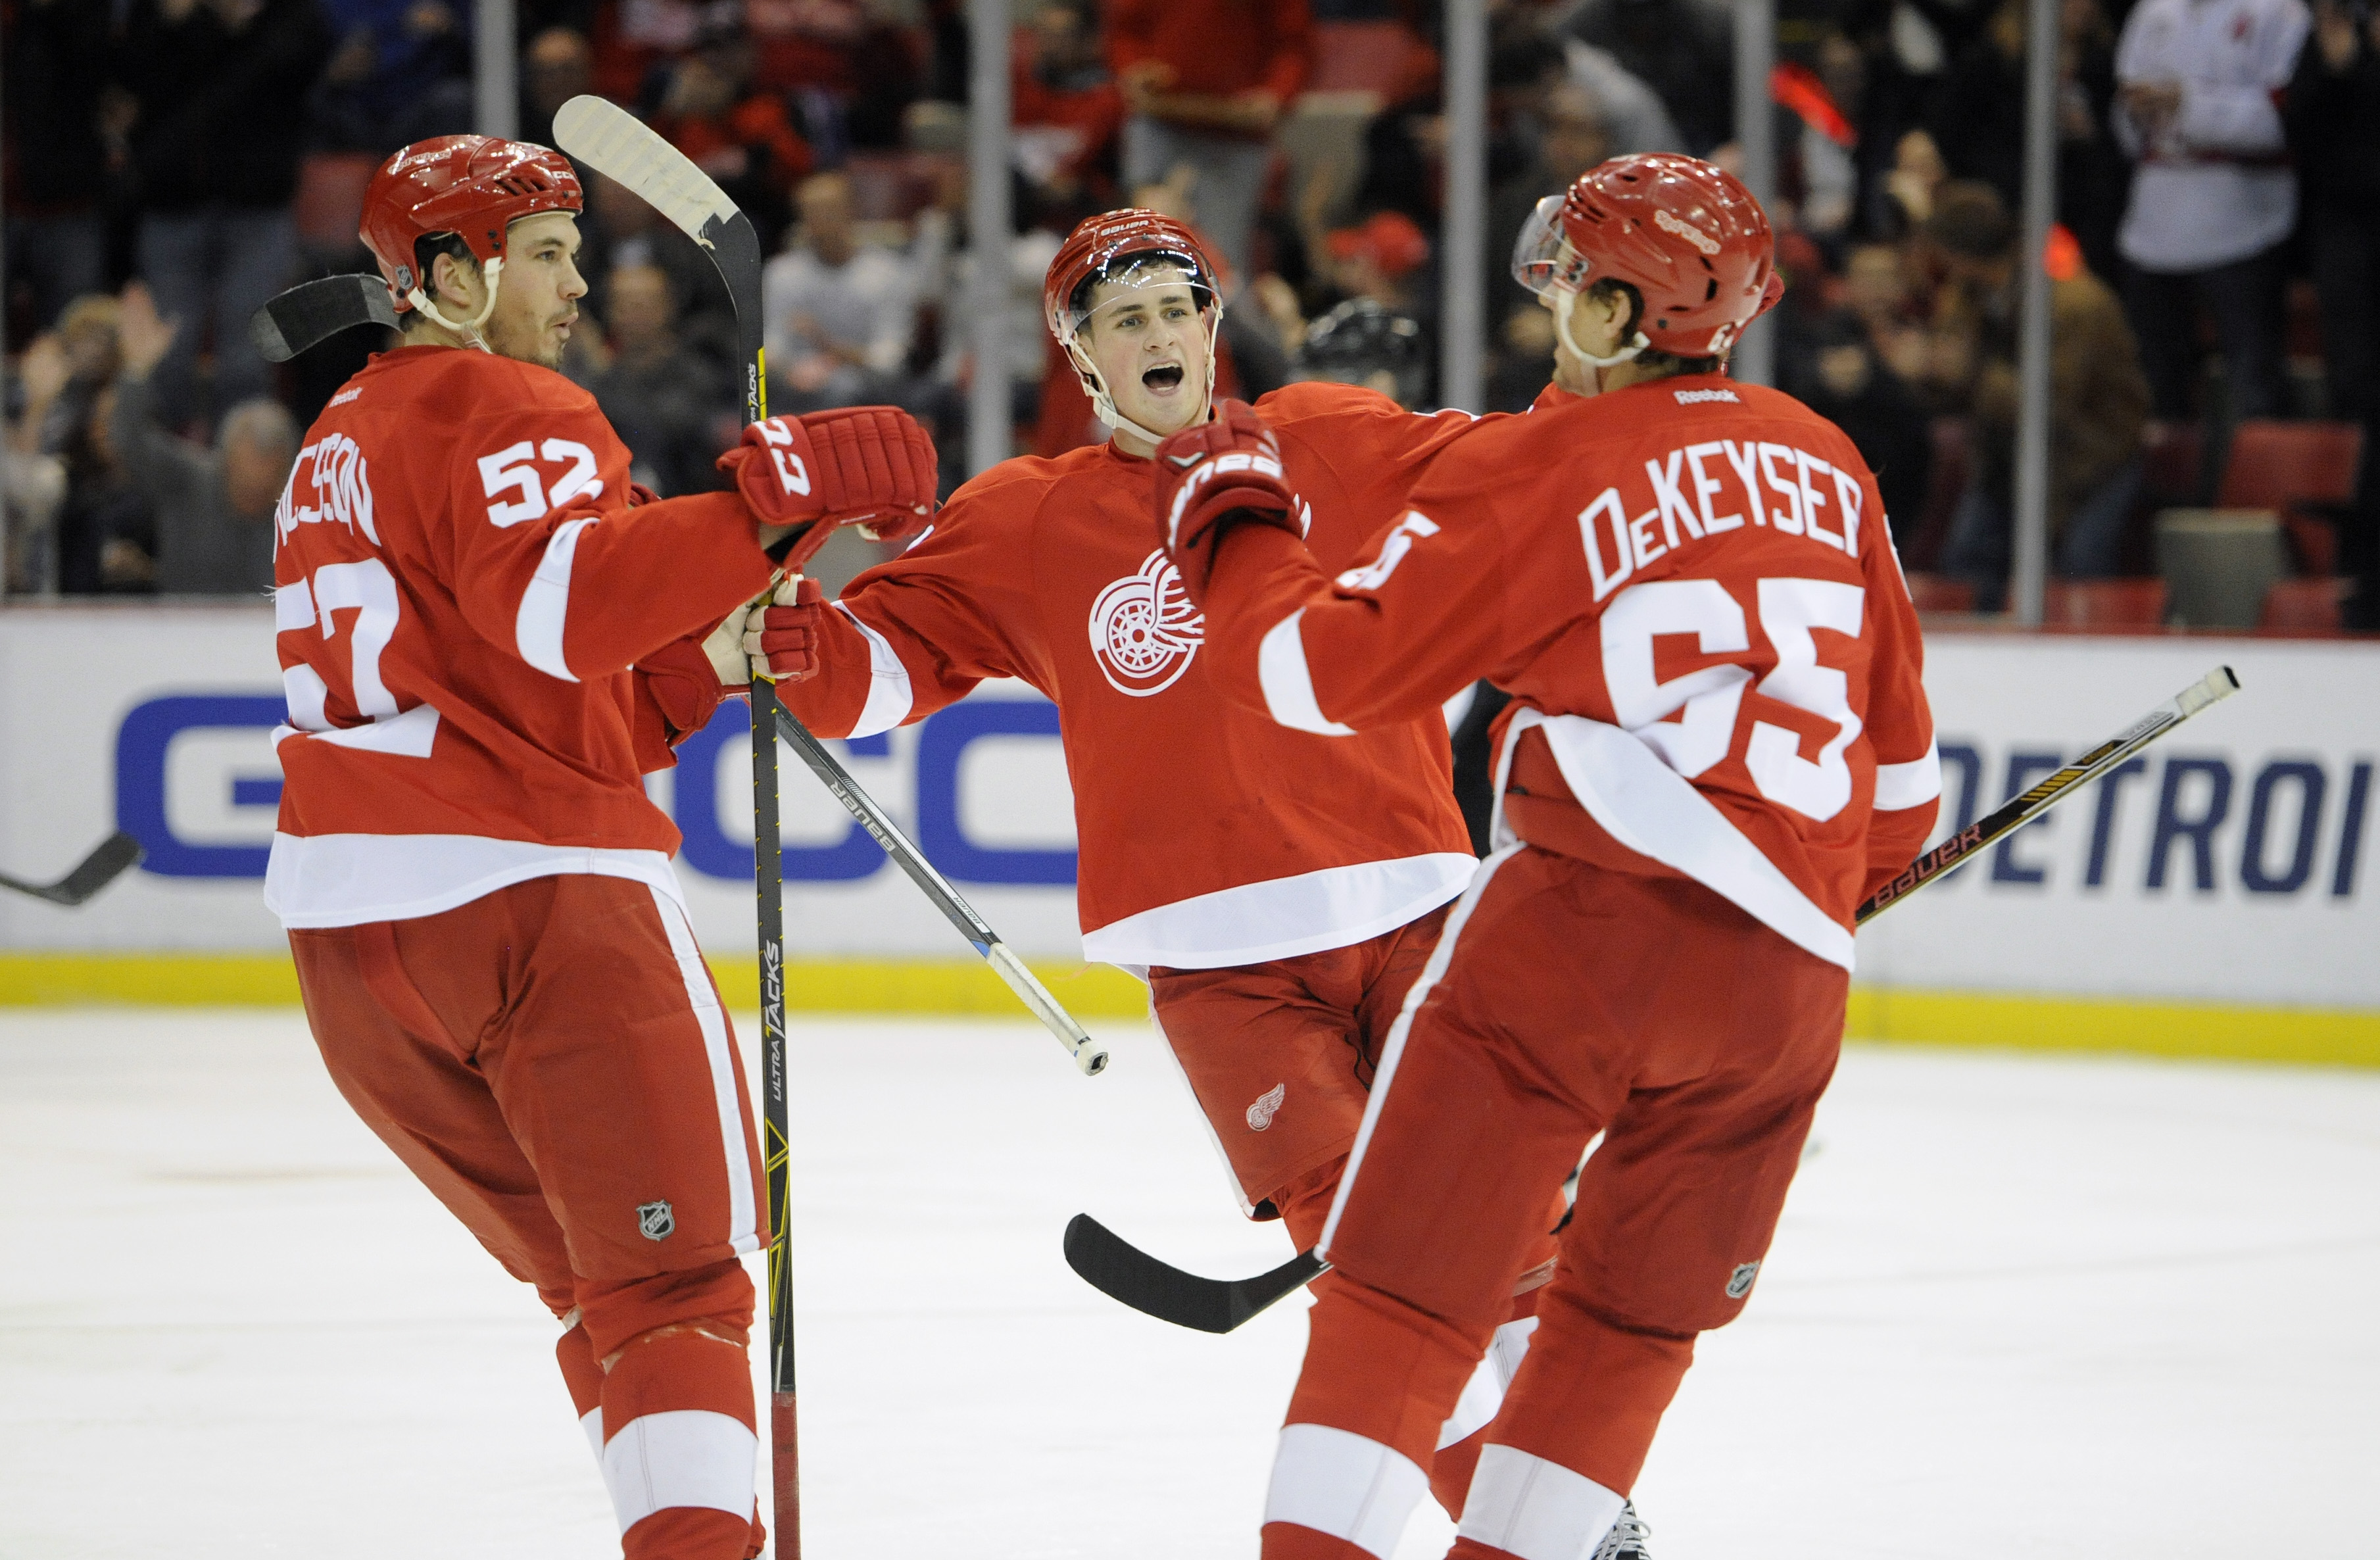 Detroit Red Wings defenseman Jonathan Ericsson (52) of Sweden, and center Dylan Larkin (71), middle, congratulate defenseman Danny DeKeyser (65) after DeKeyser scores against the Arizona Coyotes during the second period of an NHL hockey game in Detroit, T